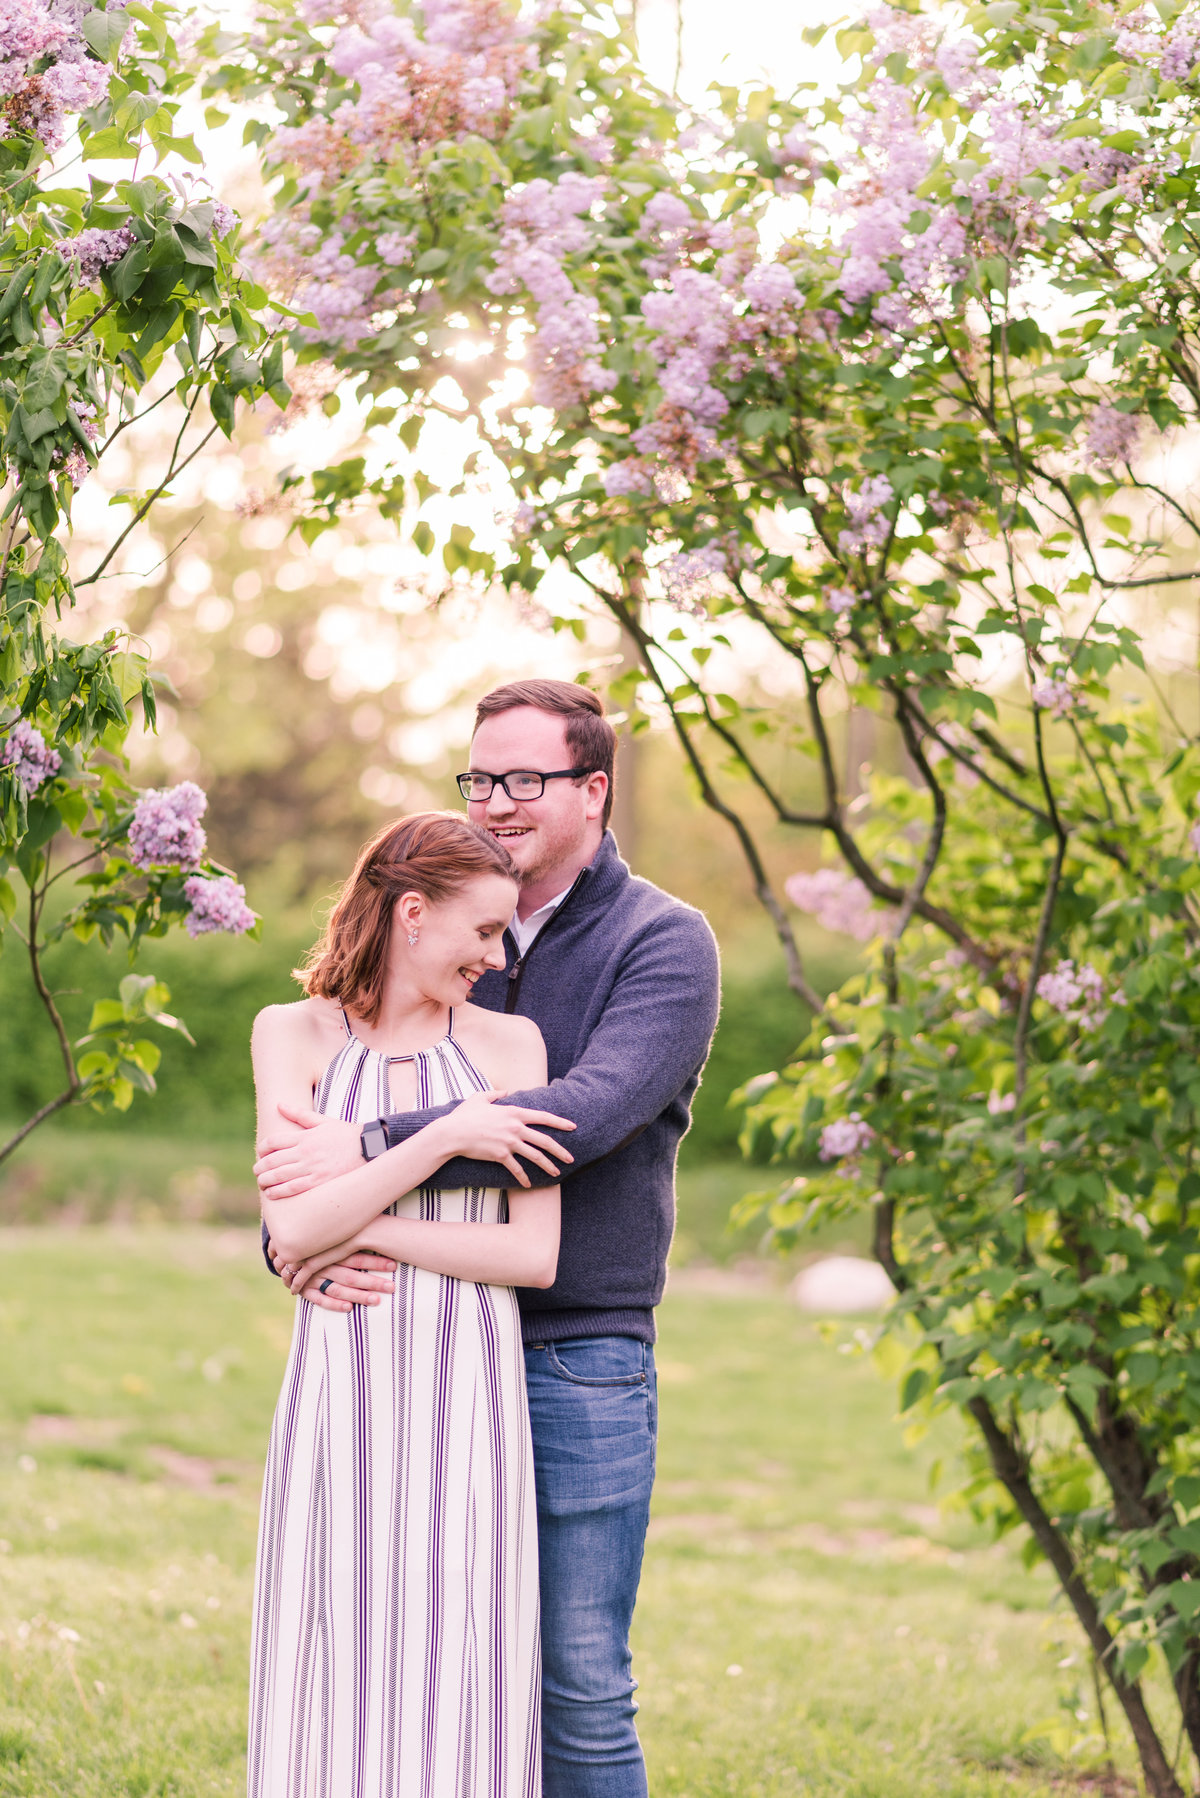 Tasha & Connor Indianapolis Couples Photographer Cait Potter Creative LLC-21